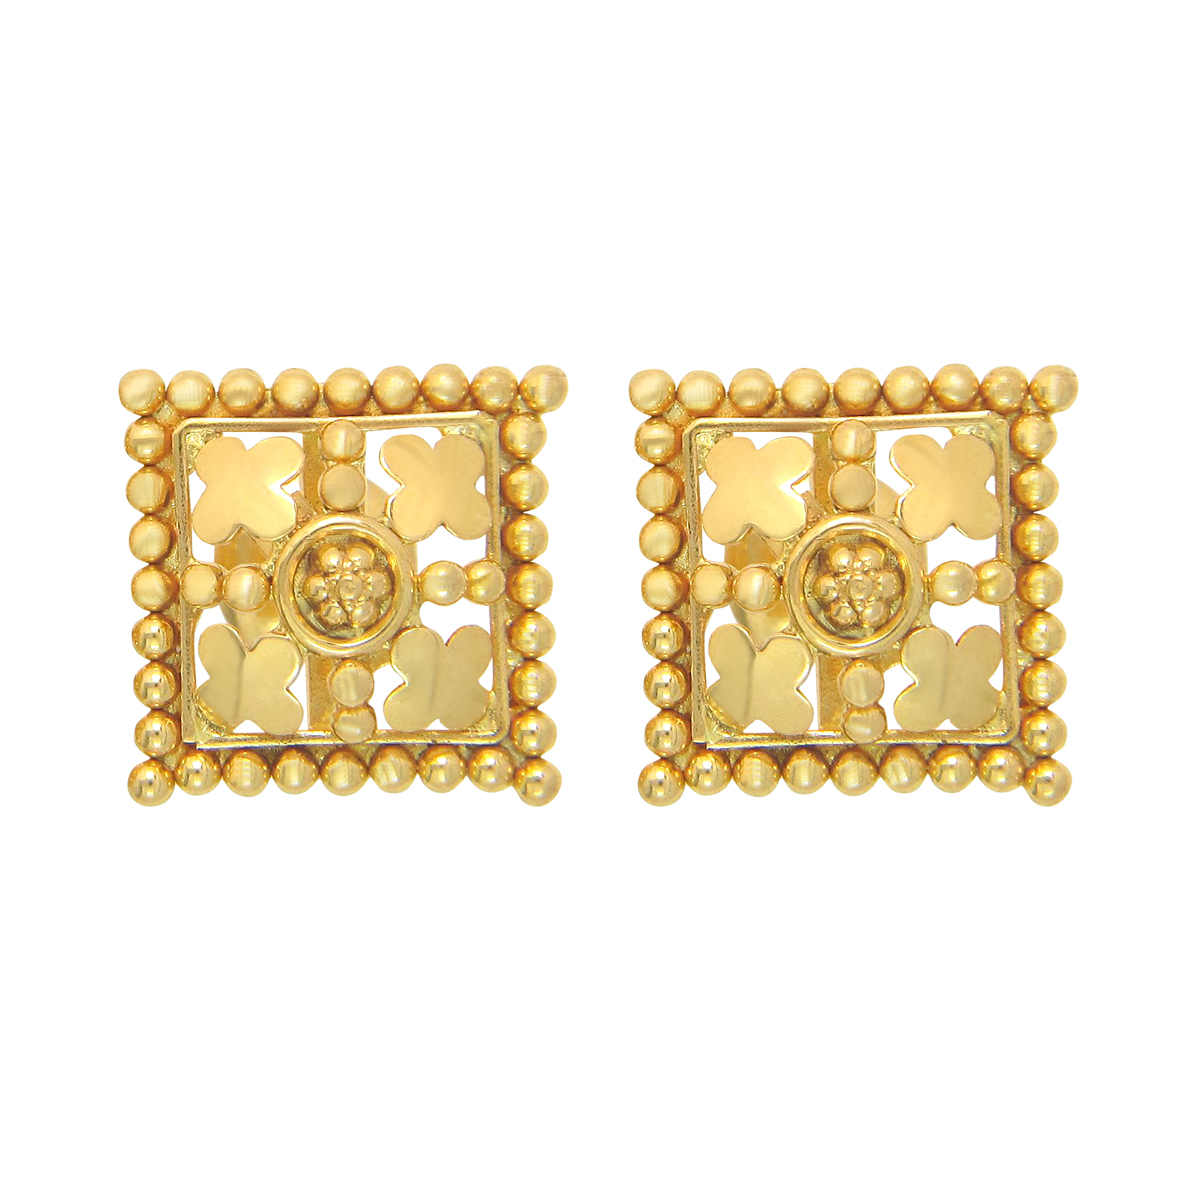 Popley 22Kt Gold Bandhan Earring - A1